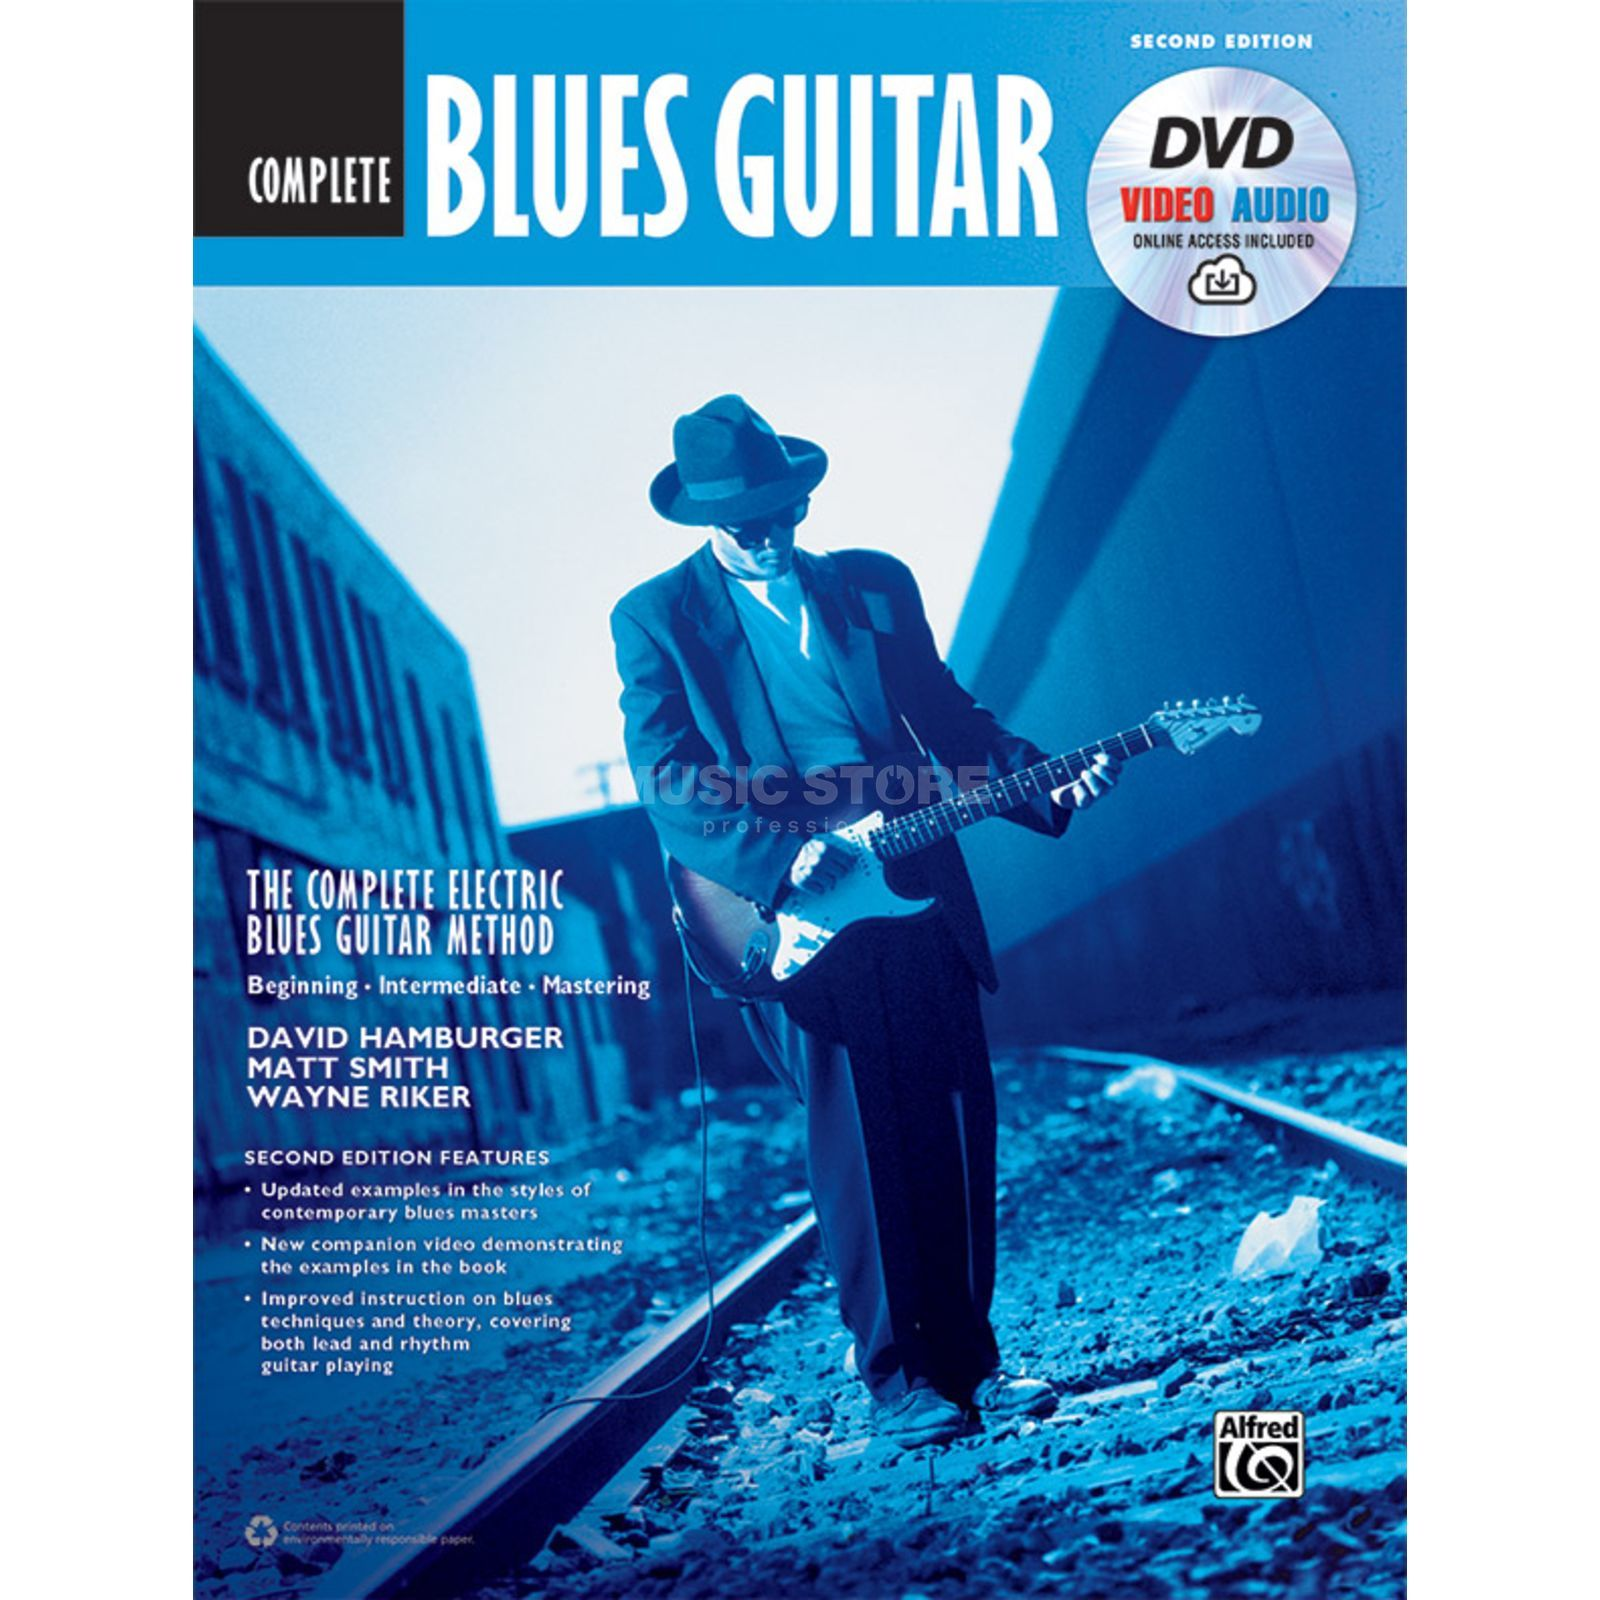 Alfred Music The Complete Blues Guitar Method: Complete Edition (Second Edition) Imagen del producto